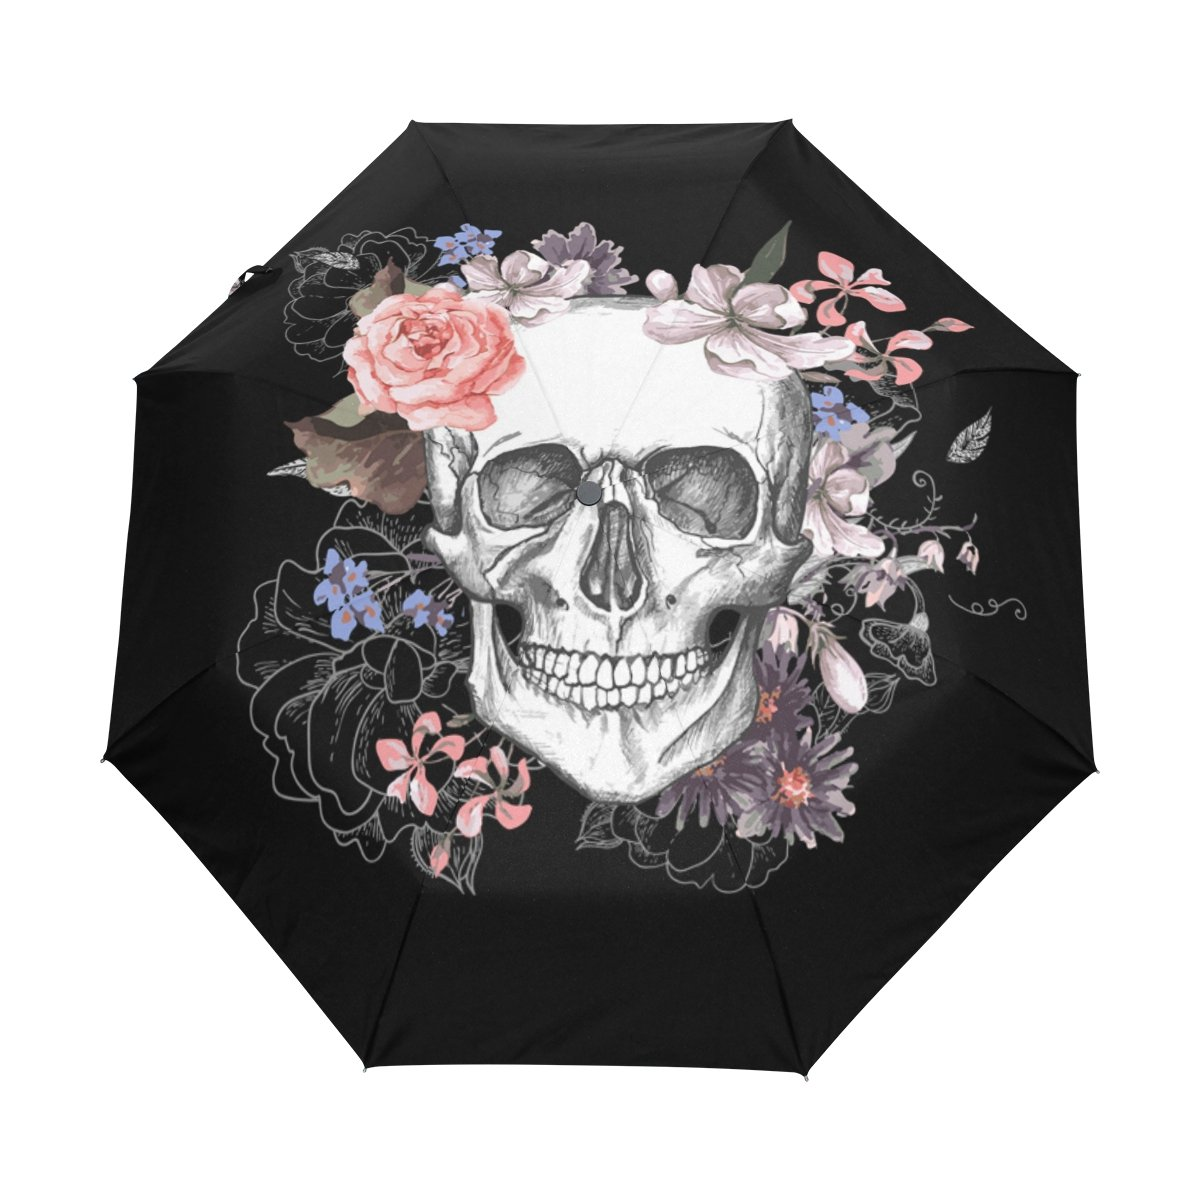 WOZO Floral Sugar Skull 3 Folds Auto Open Close Umbrella